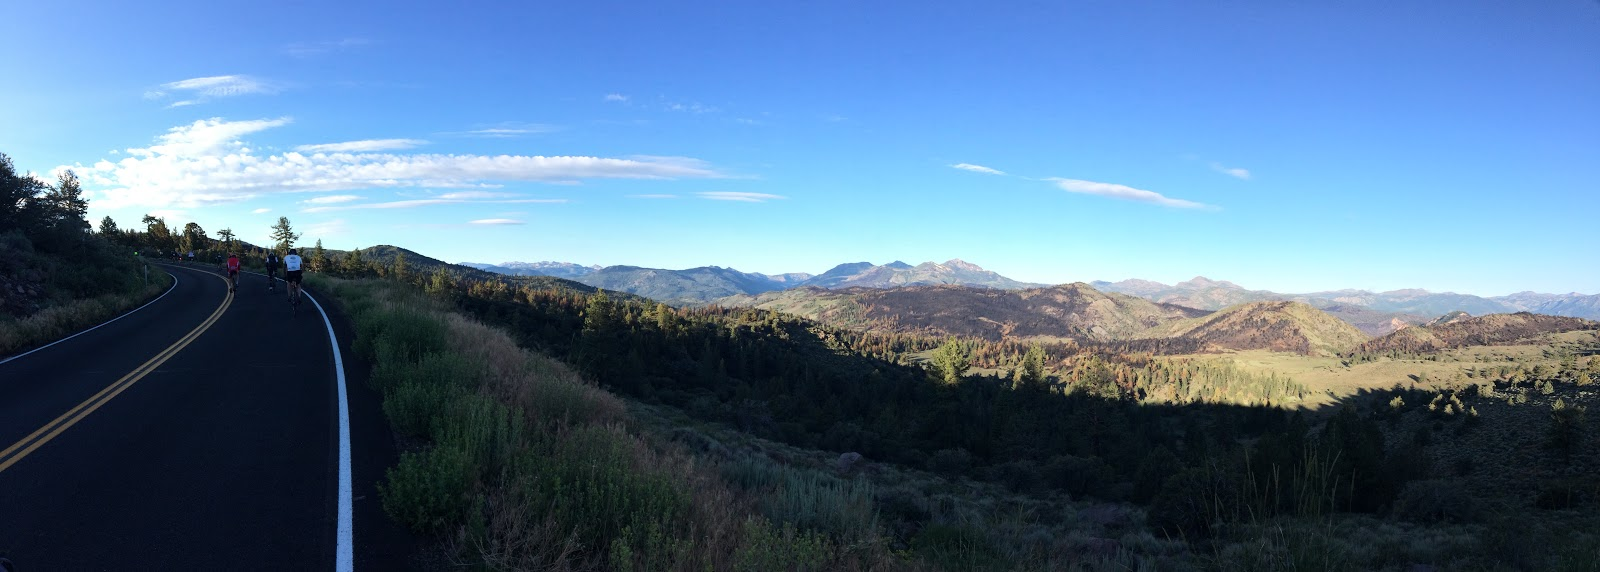 Climbing Monitor Pass West by bike - panorama view of mountains and forest